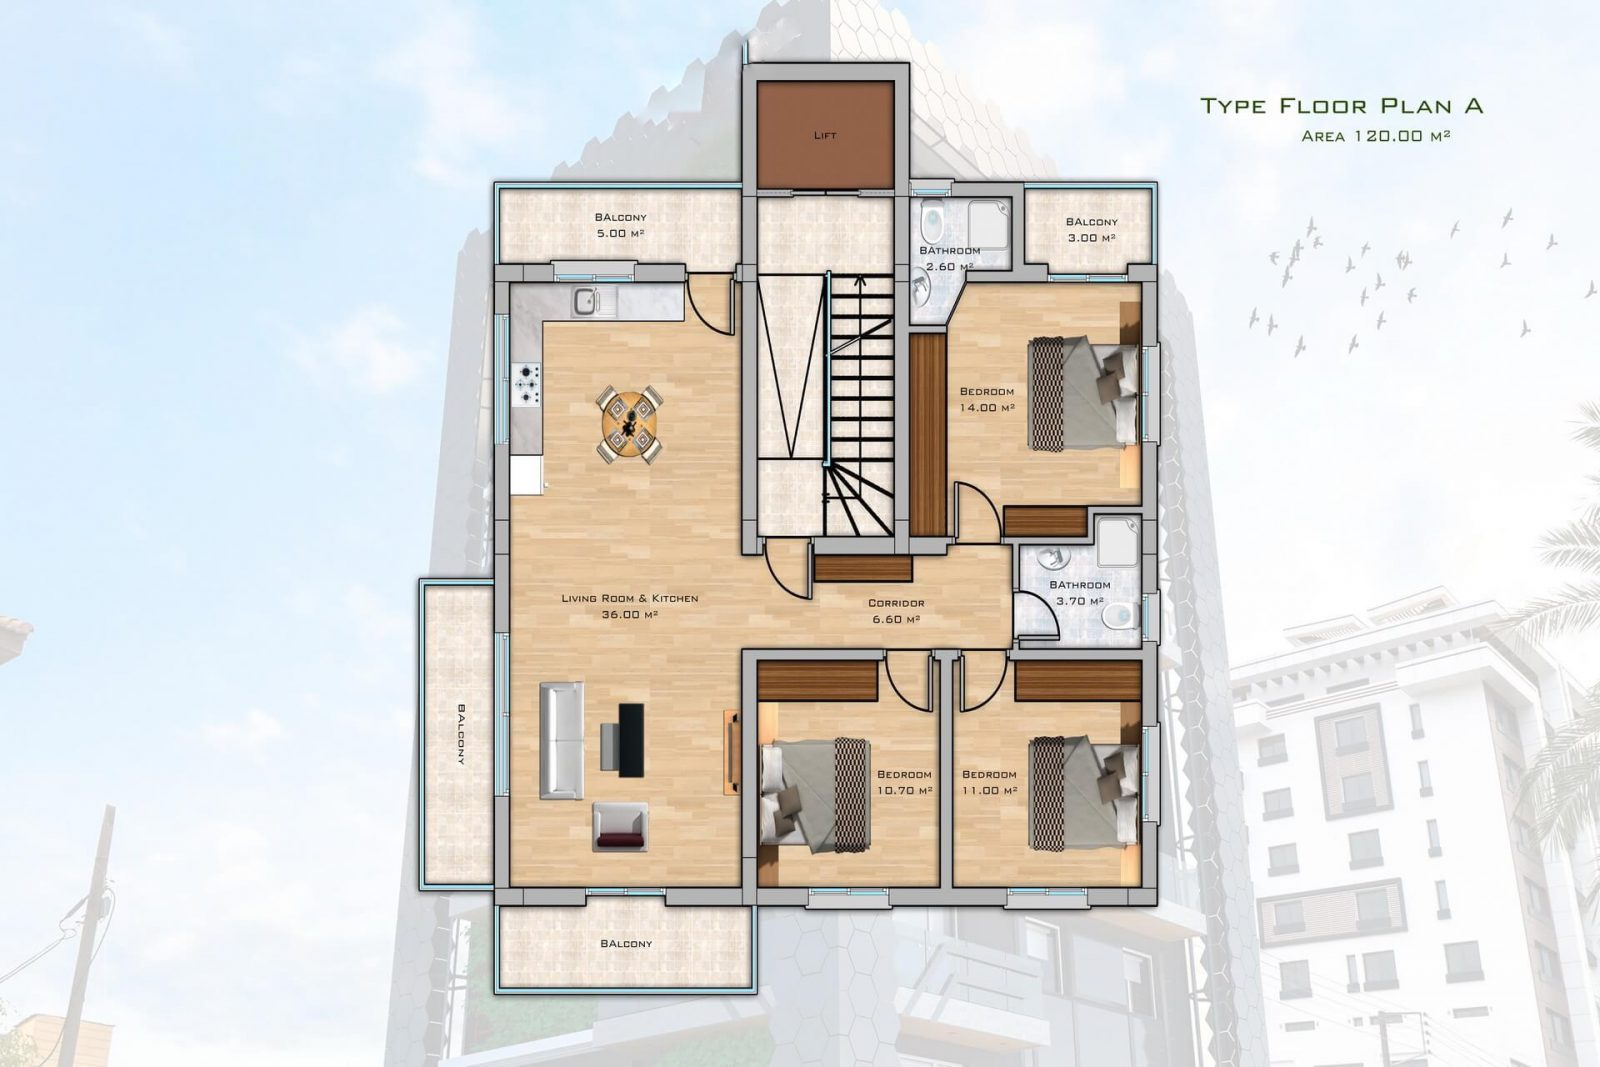 3 Bedroom Penthouse of 120m² in City Center of Kyrenia